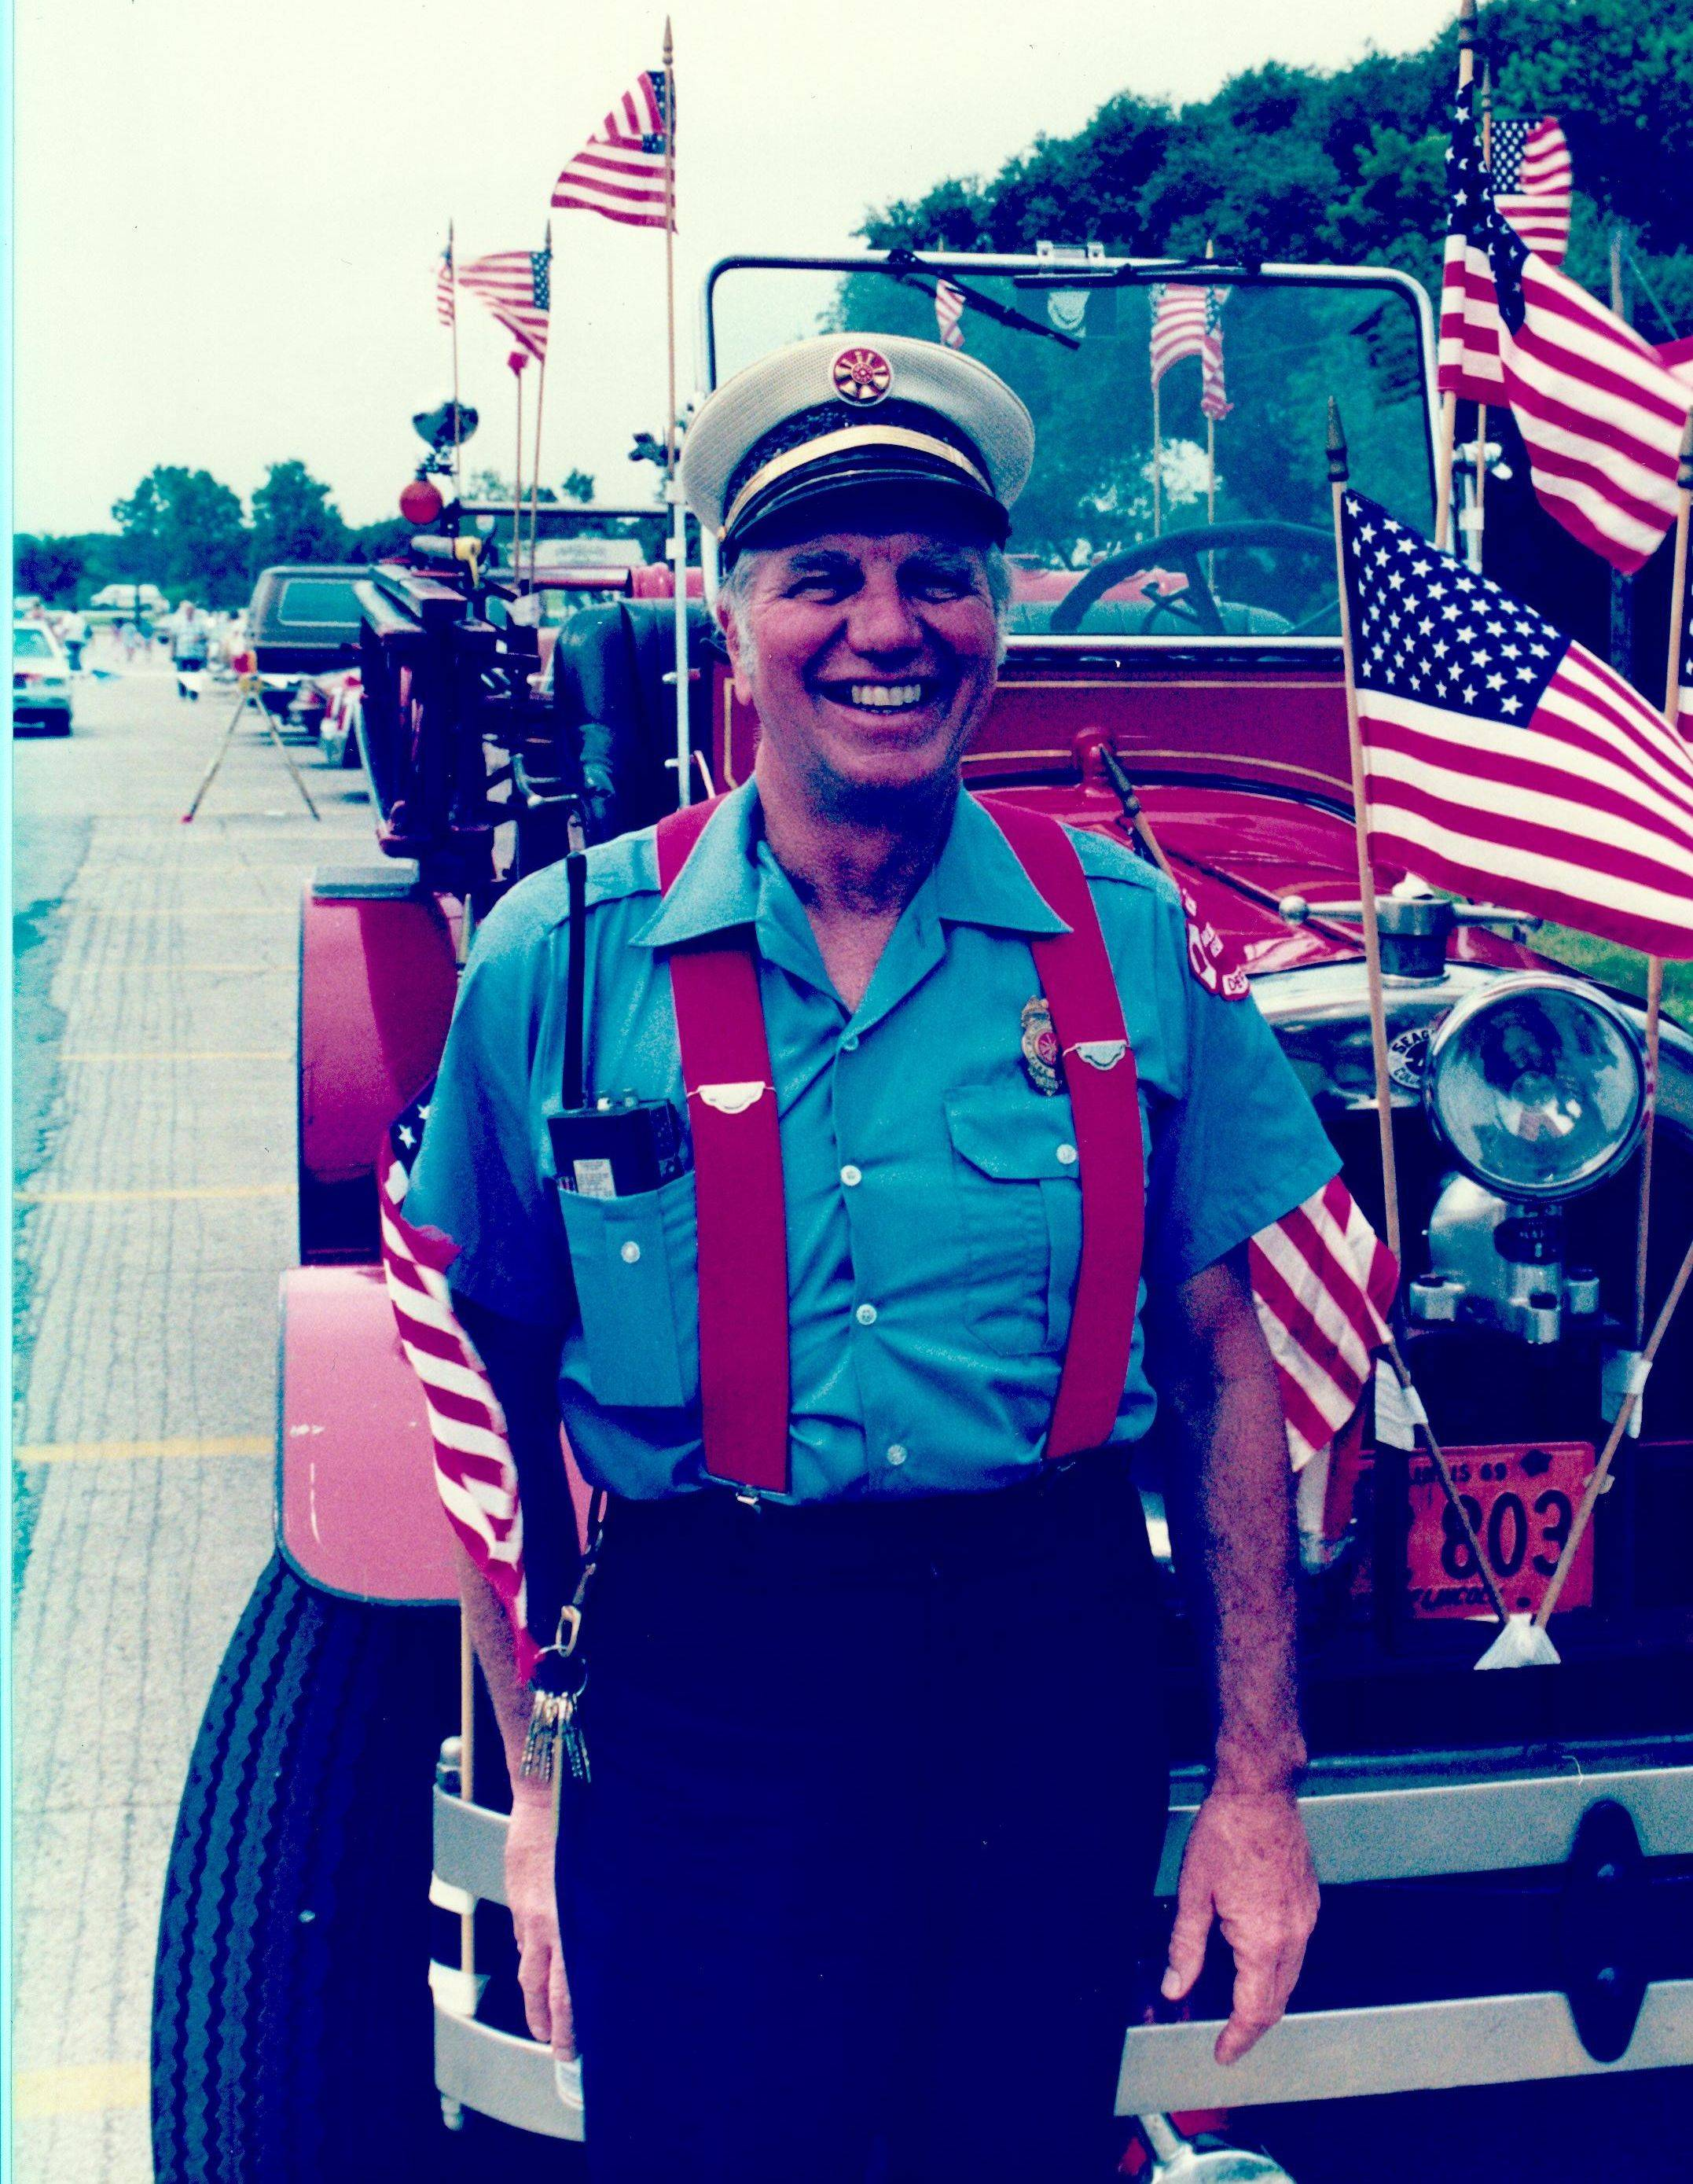 David Mills worked for the Arlington Heights Fire Department for 32 years.